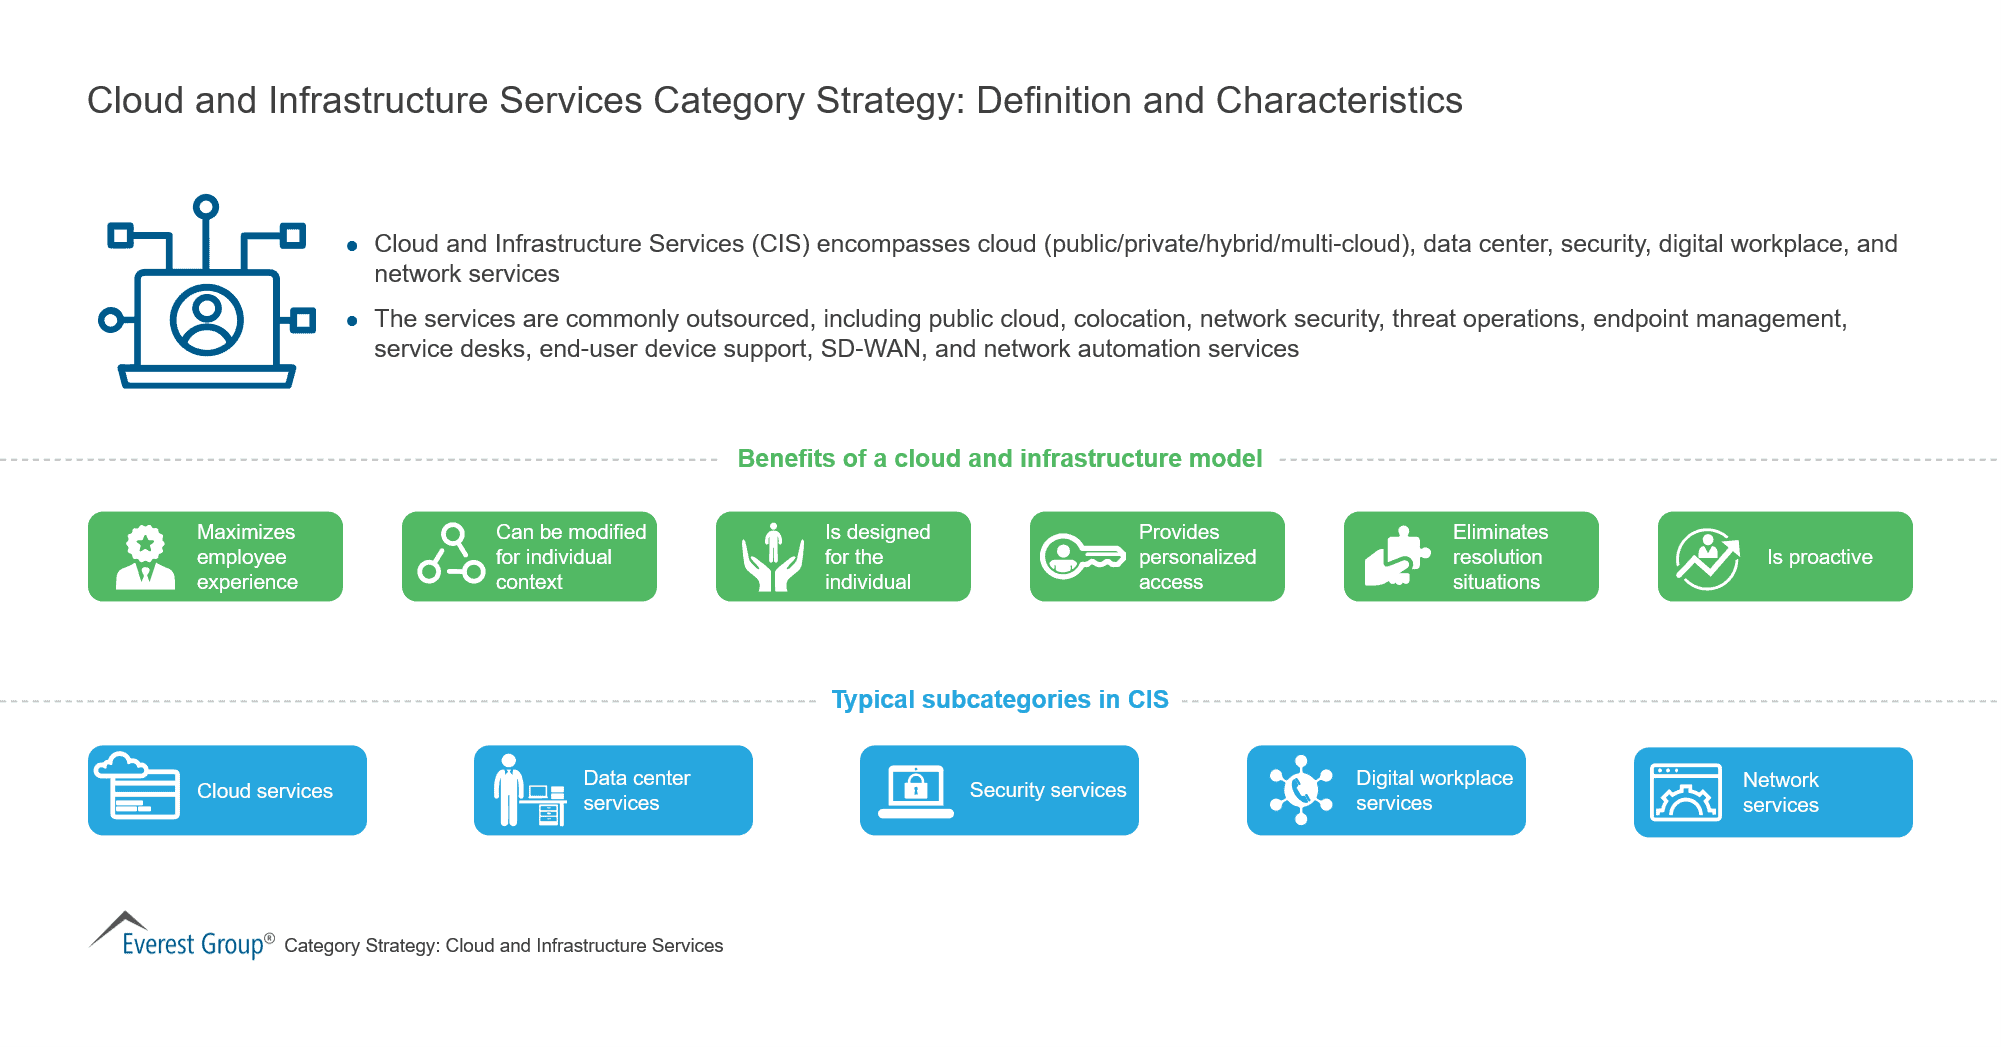 Cloud and Infrastructure Services Category Strategy-Definition and Characteristics